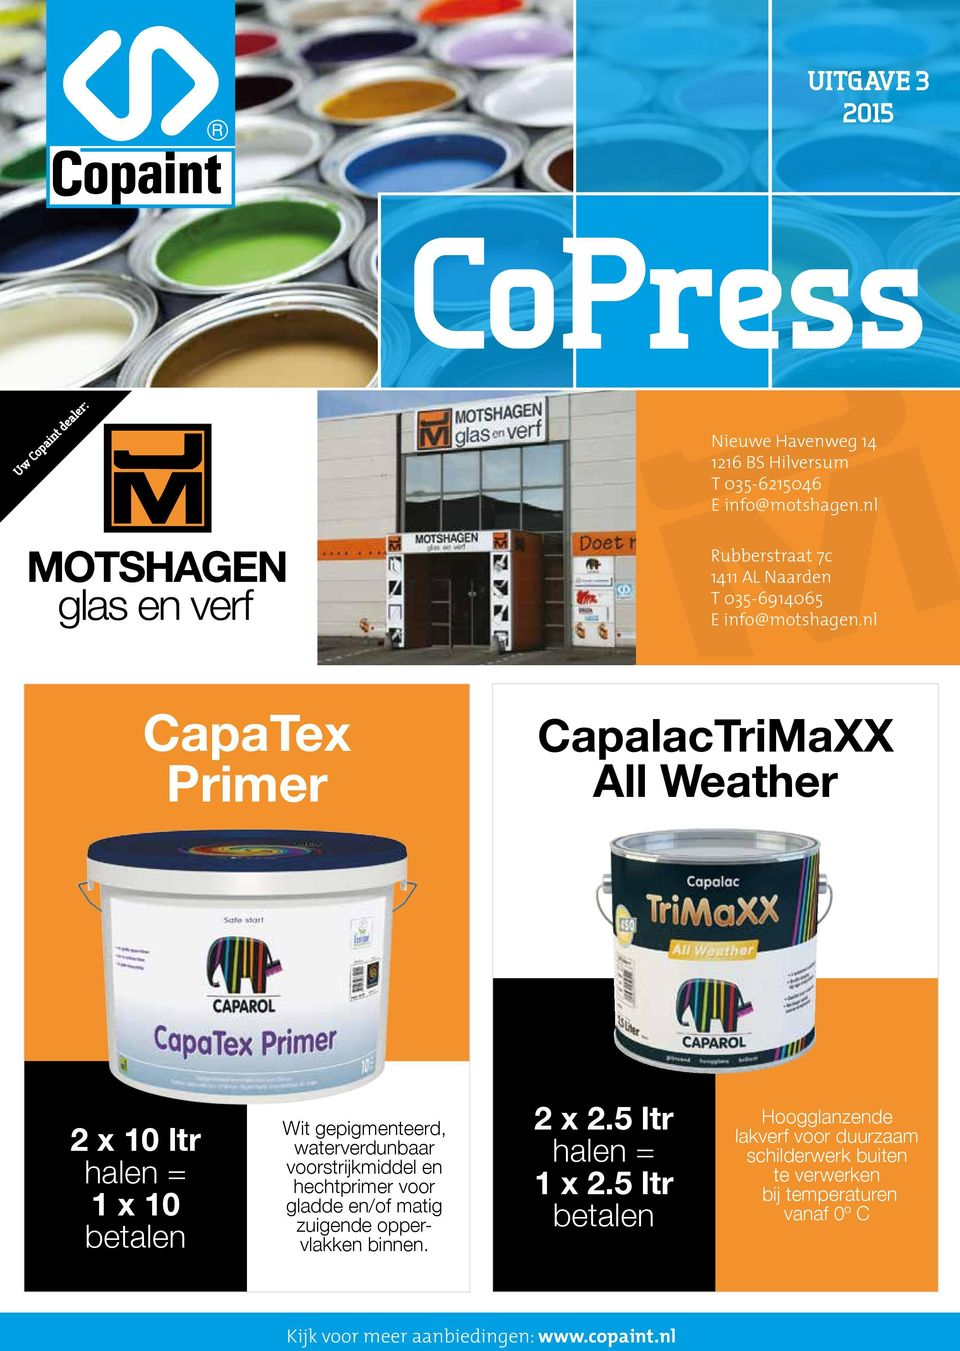 nl CapaTex Primer CapalacTriMaXX All Weather 2 x 10 ltr 1 x 10 Wit gepigmenteerd, waterverdunbaar